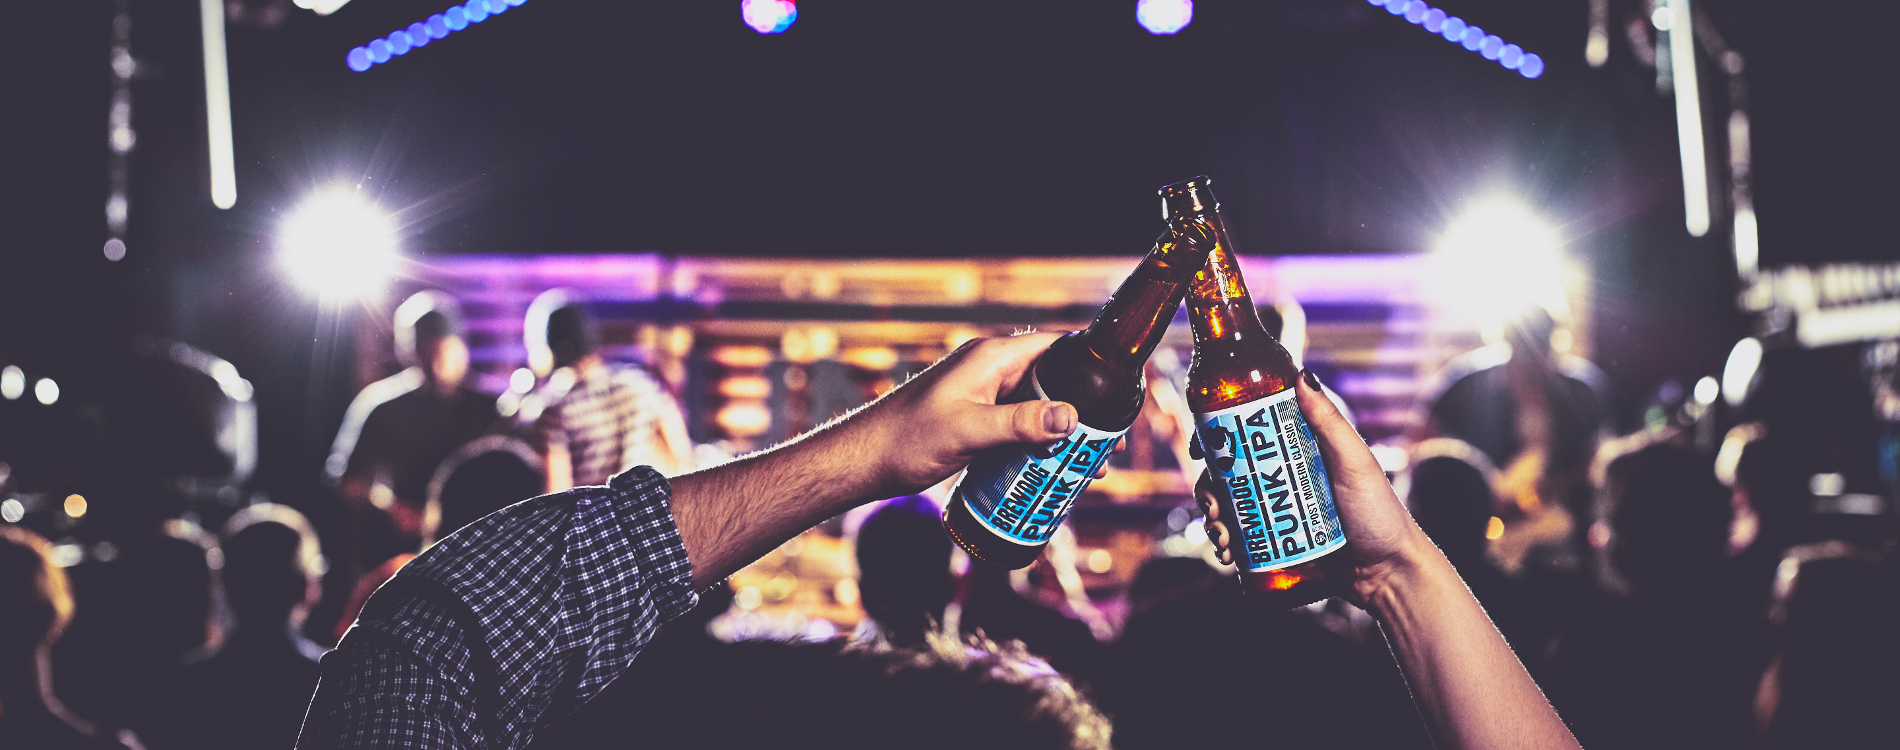 EQUITY FOR PUNKS DOUBLE REFERRAL POINTS WEEKEND!